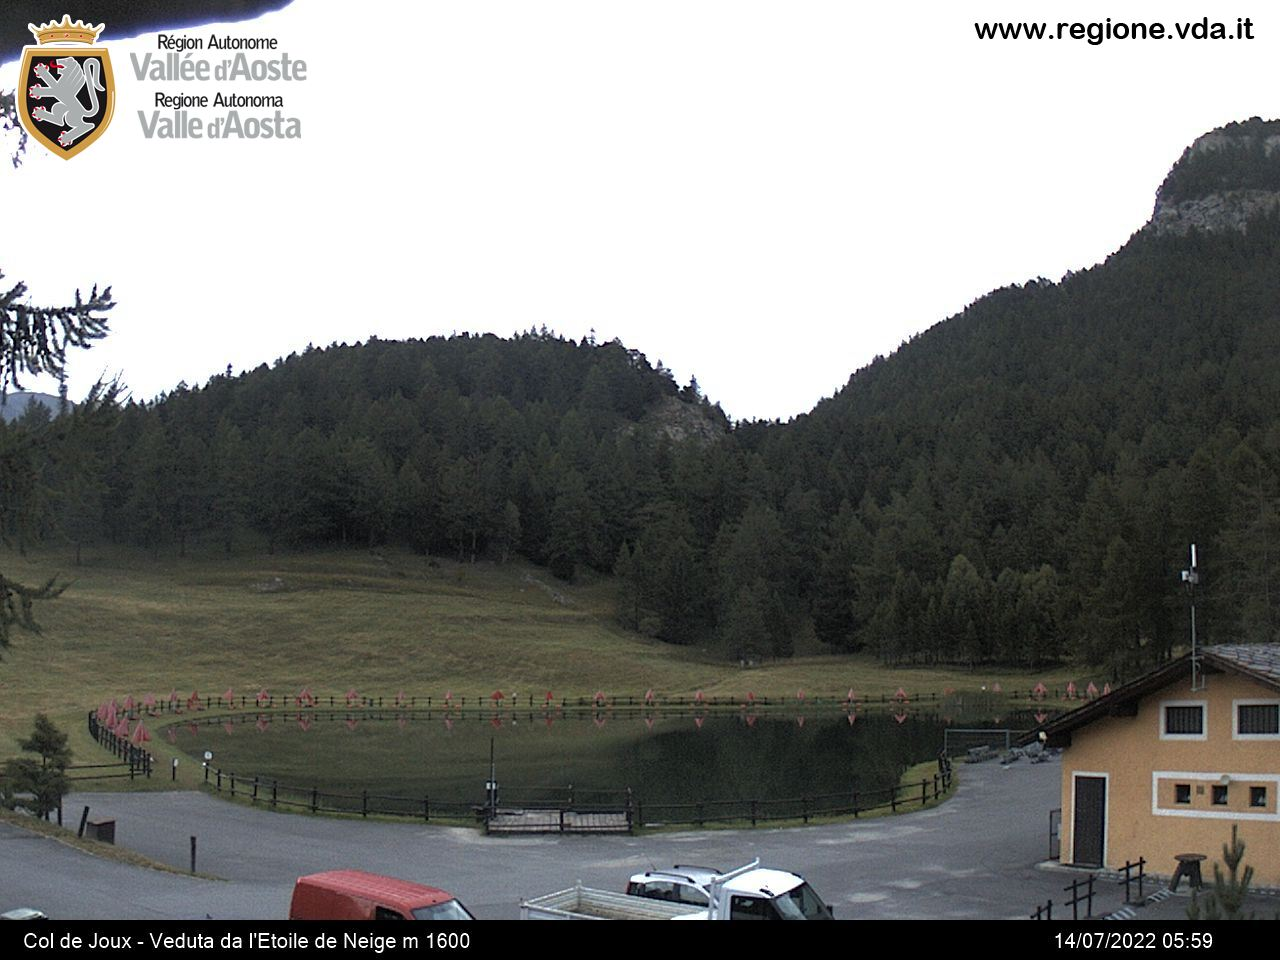 Webcam Saint Vincent - Regione Valle d´Aosta